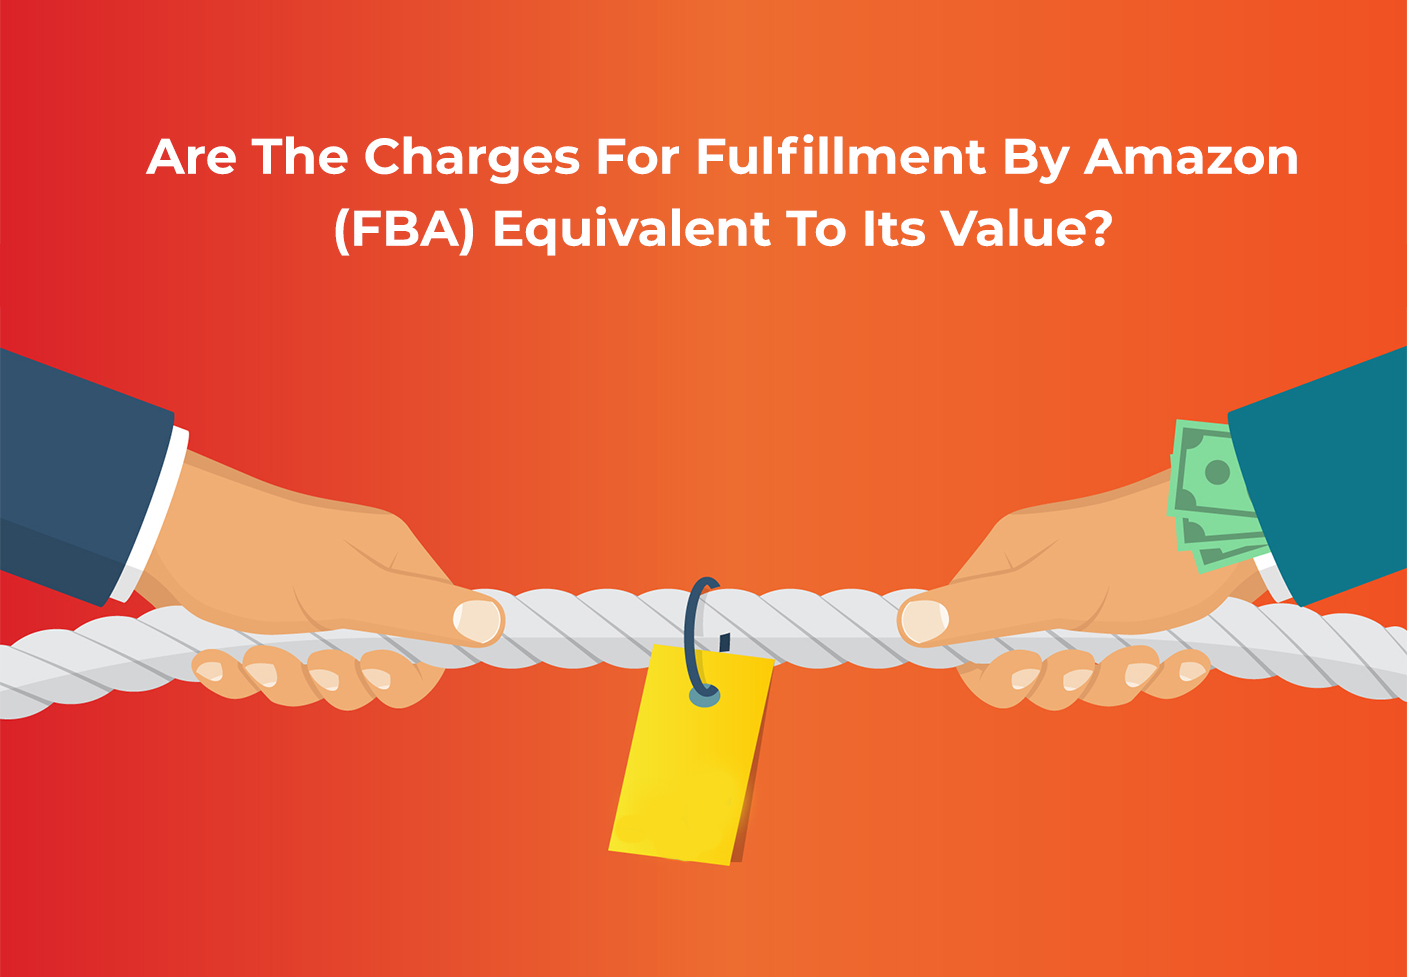 Are-The-Charges-For-Fulfillment-By-Amazon-(FBA)-Equivalent-To-Its-Value